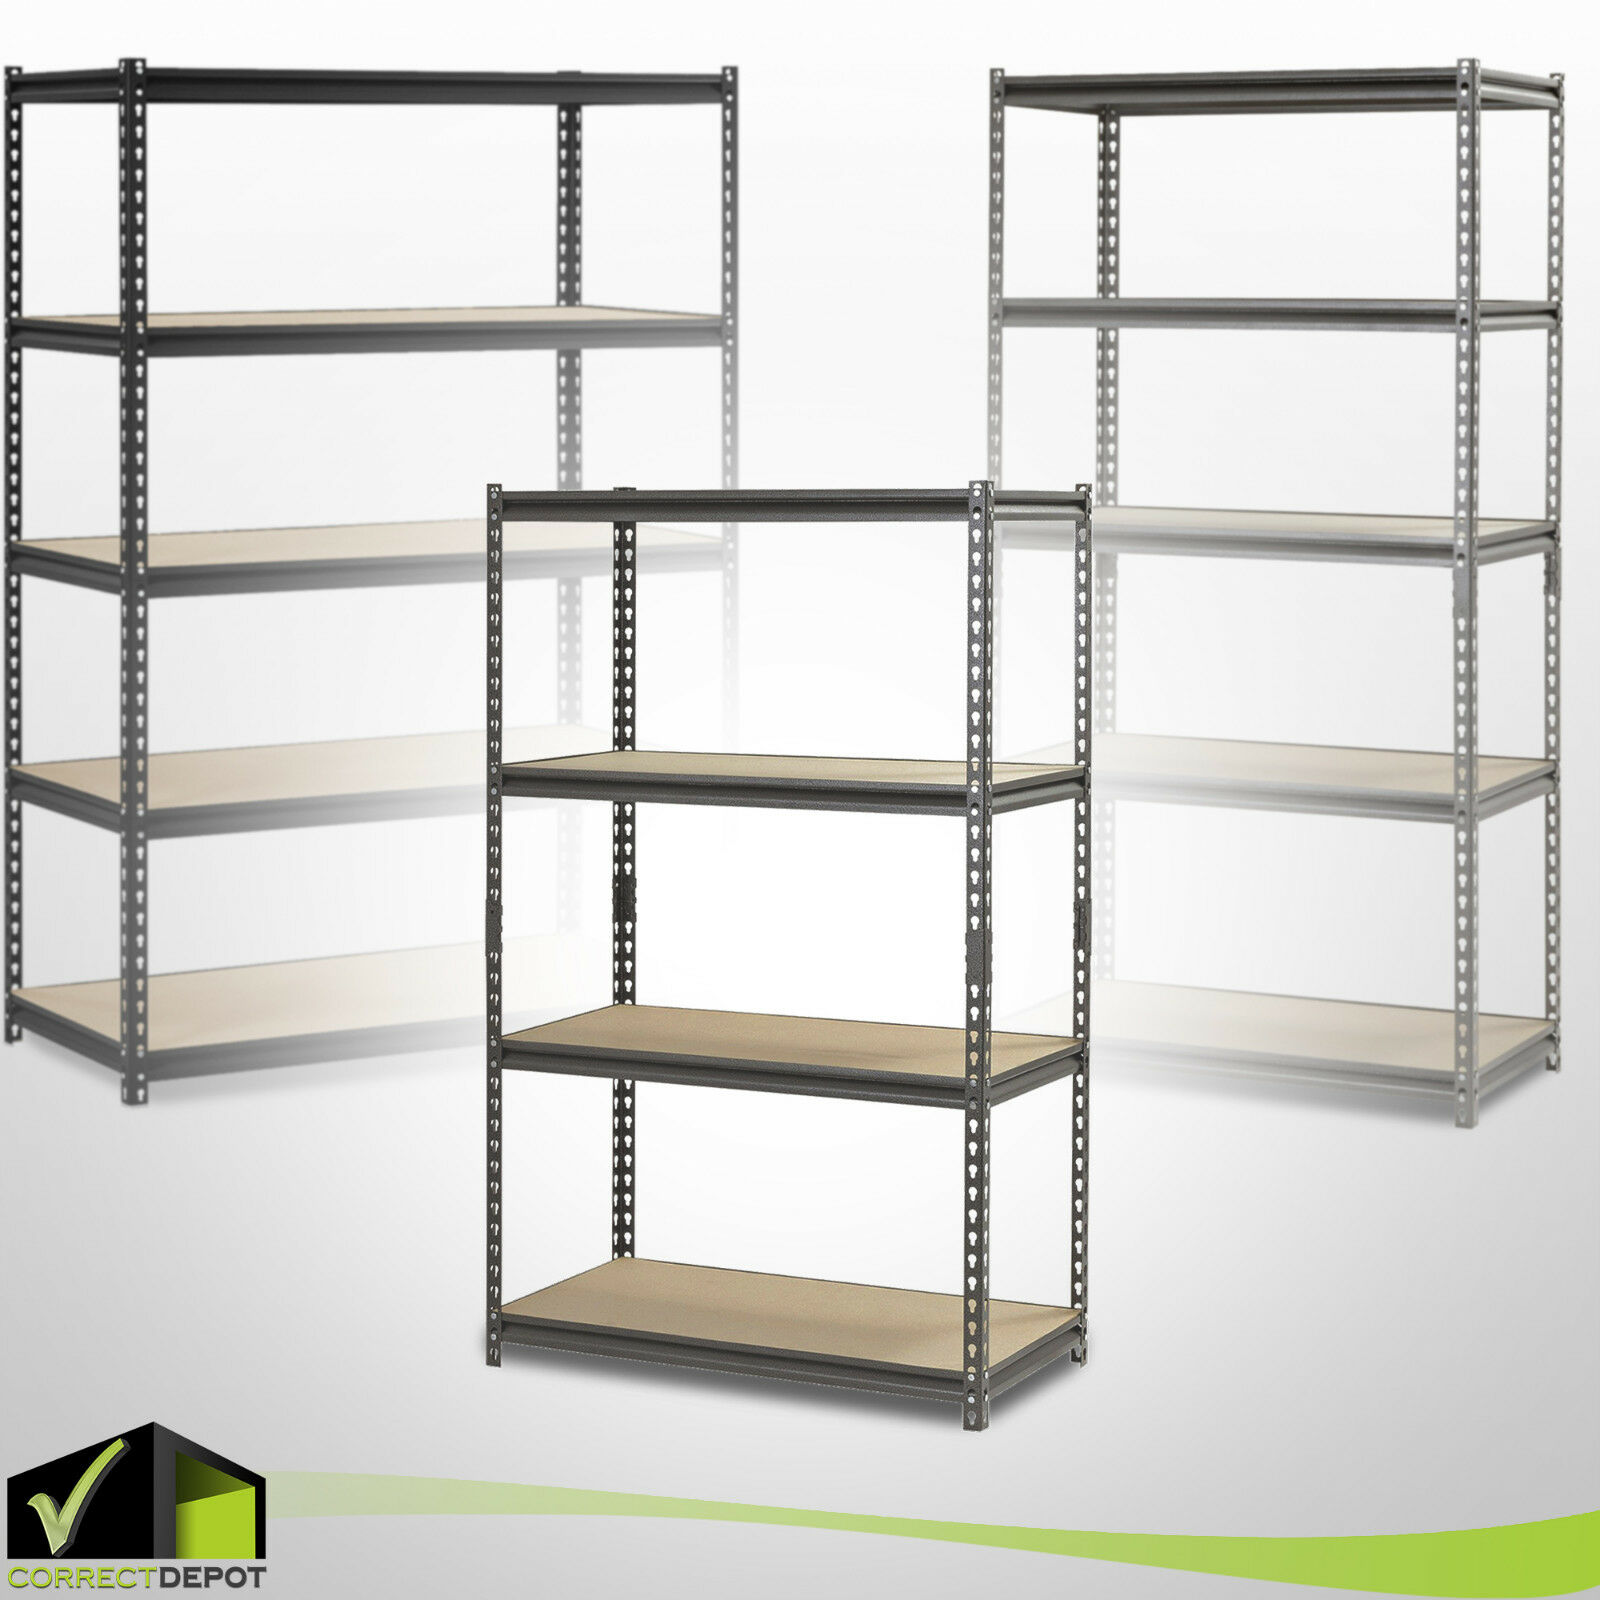 HEAVY DUTY MUSCLE RACK Adjustable Steel Storage Metal Shelve